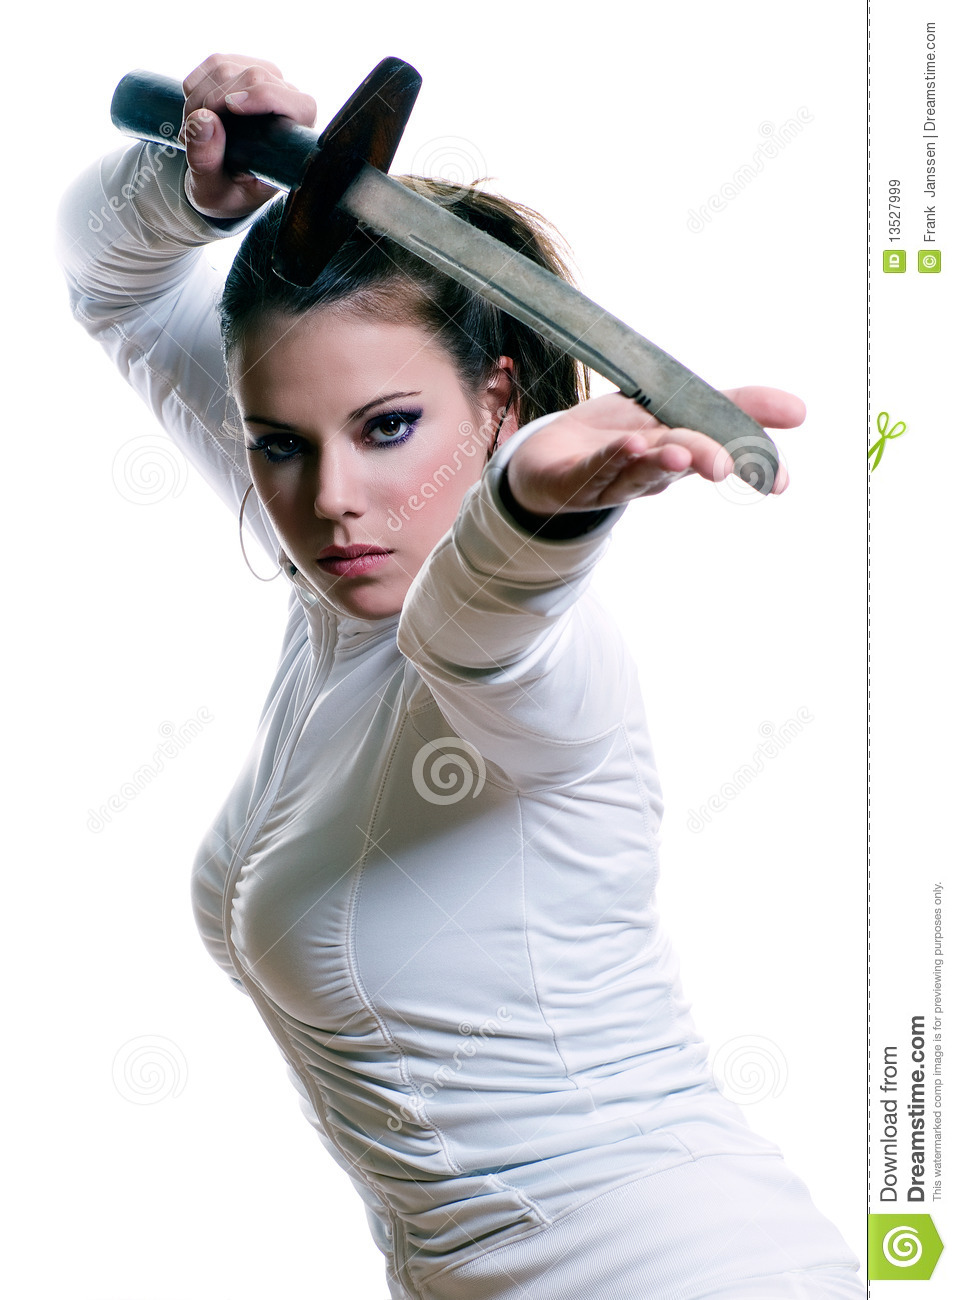 sword girl stock image image of white strength fight 13527999